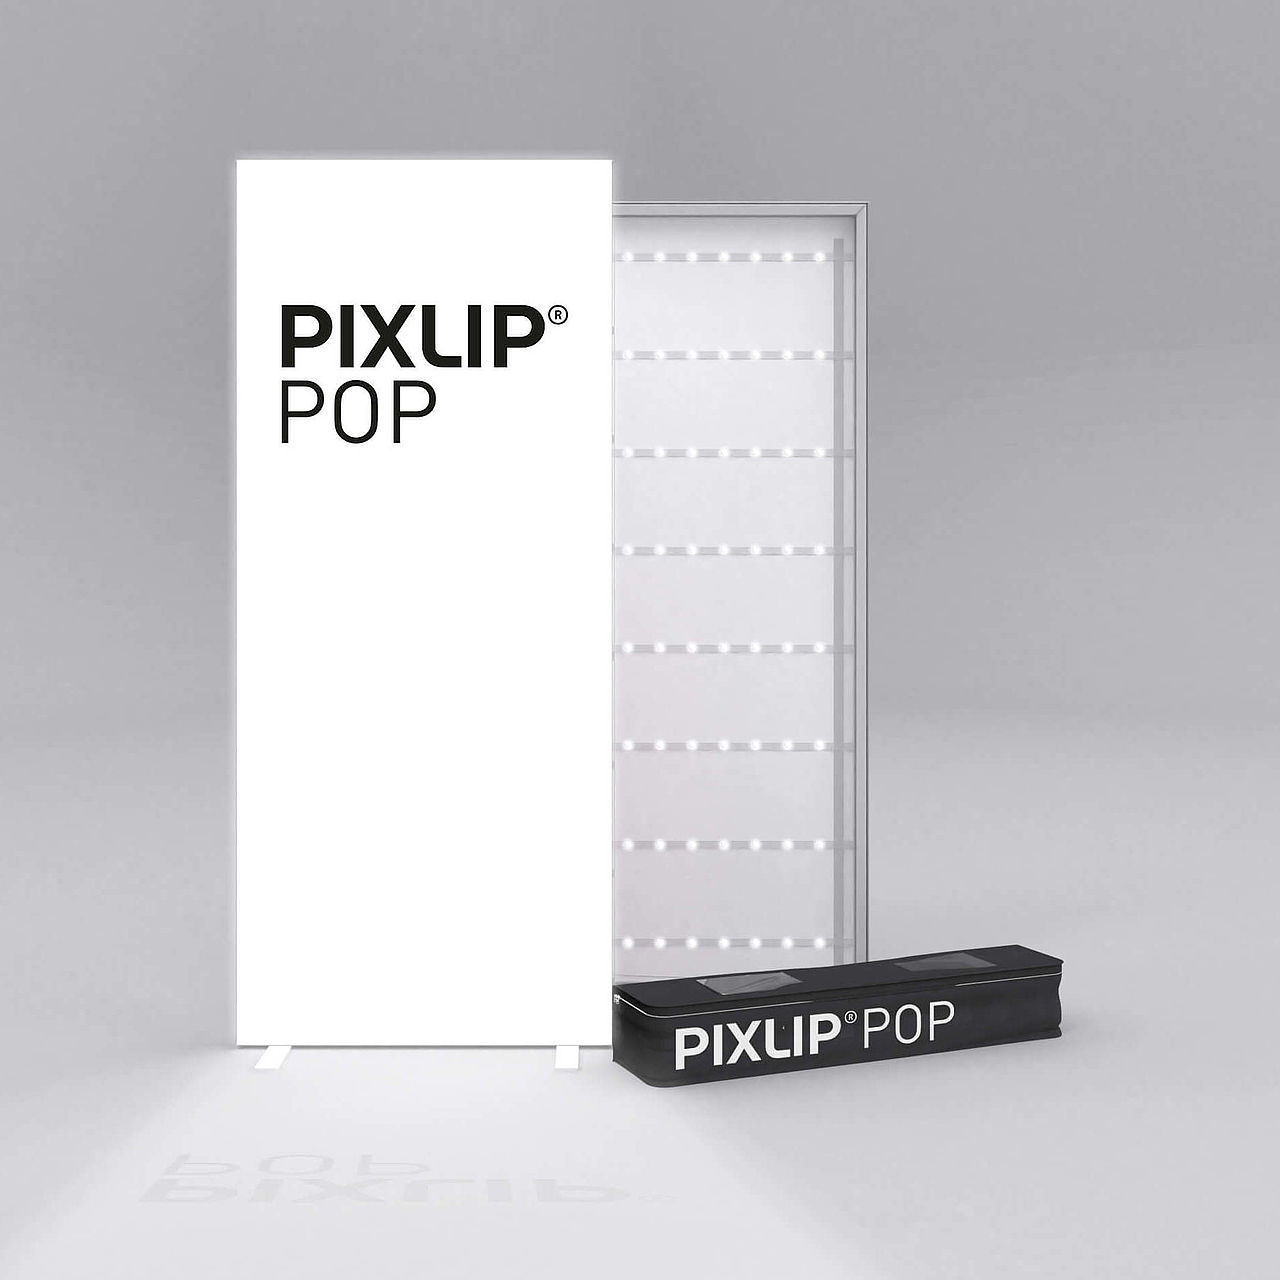 LED Rollup Pixlip Pop